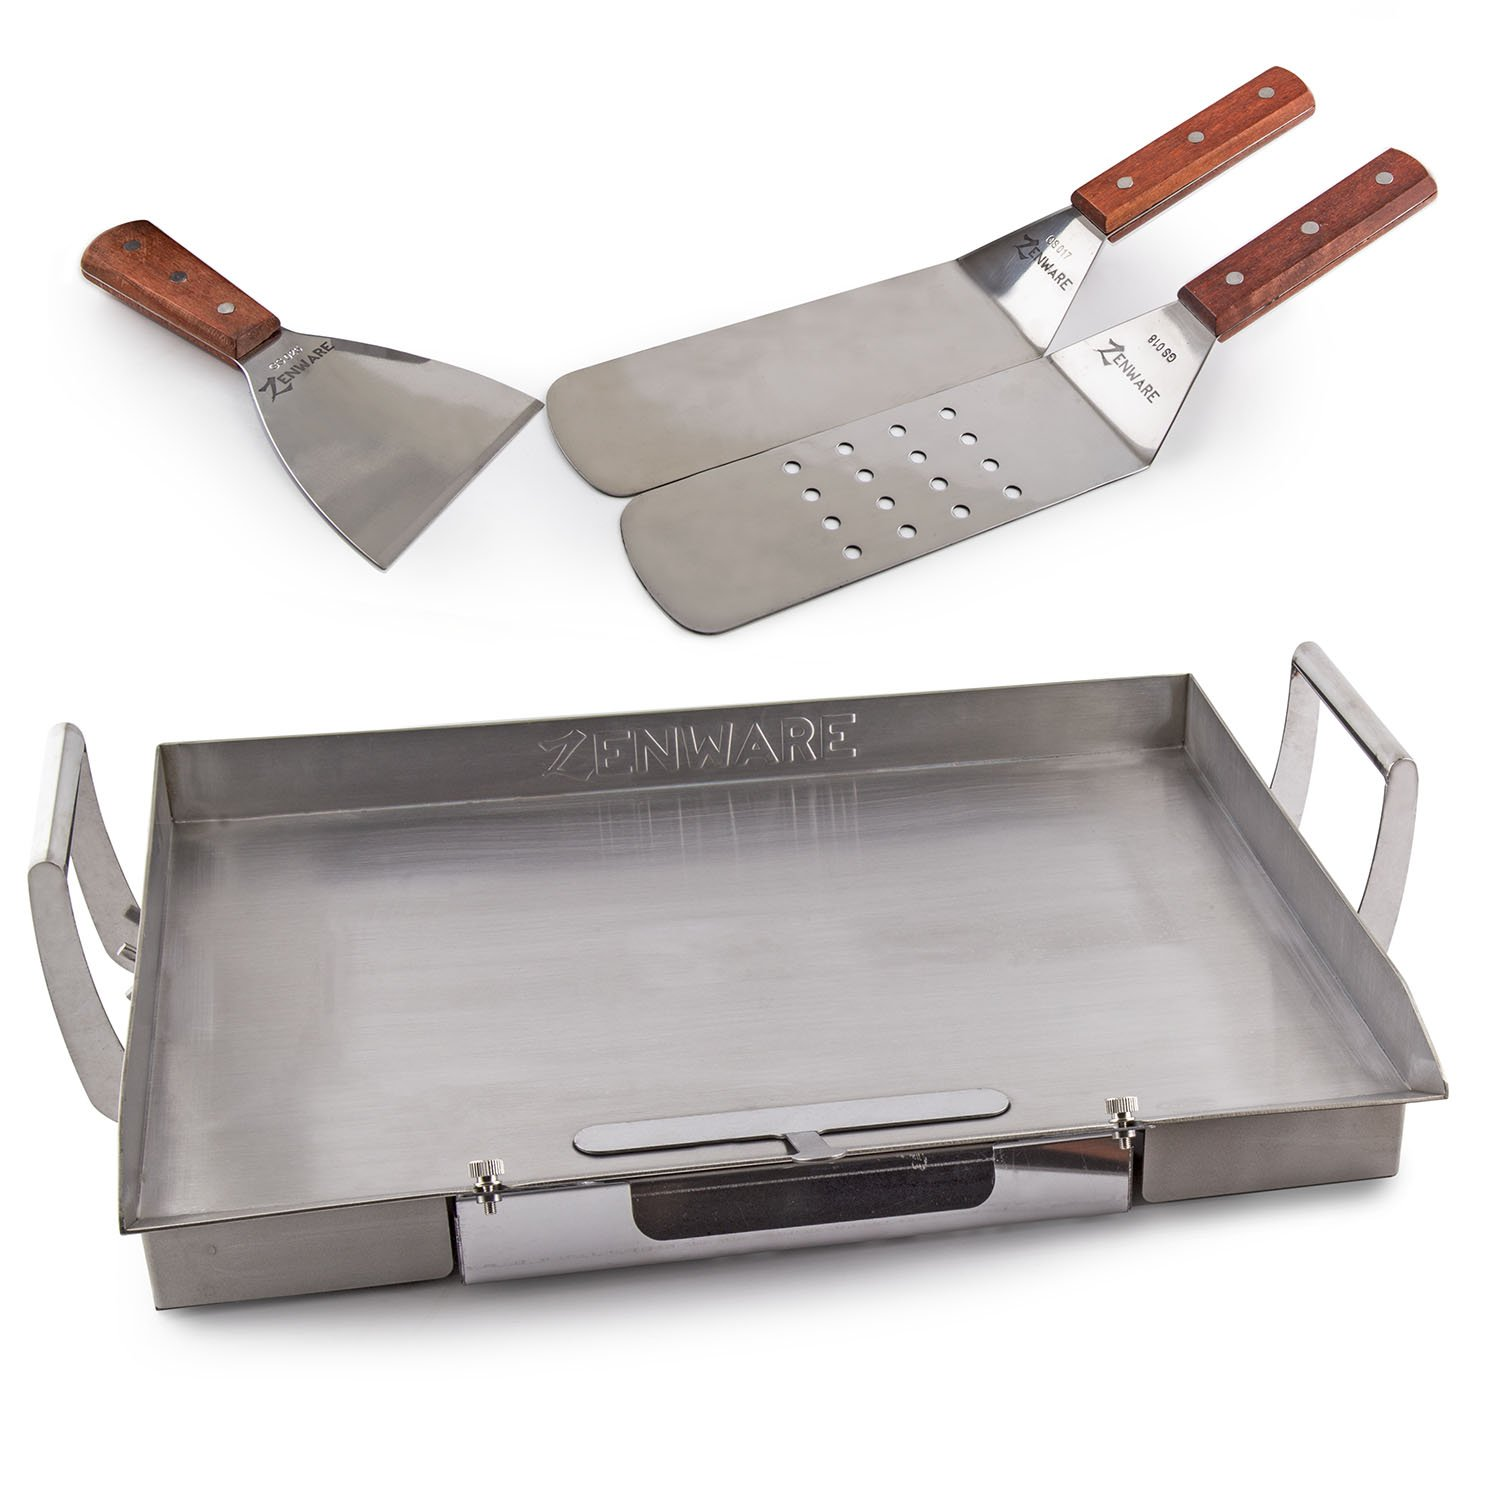 Zenware Stainless Steal Universal Teppanyaki Griddle for BBQ Grills w/ Utensil Set